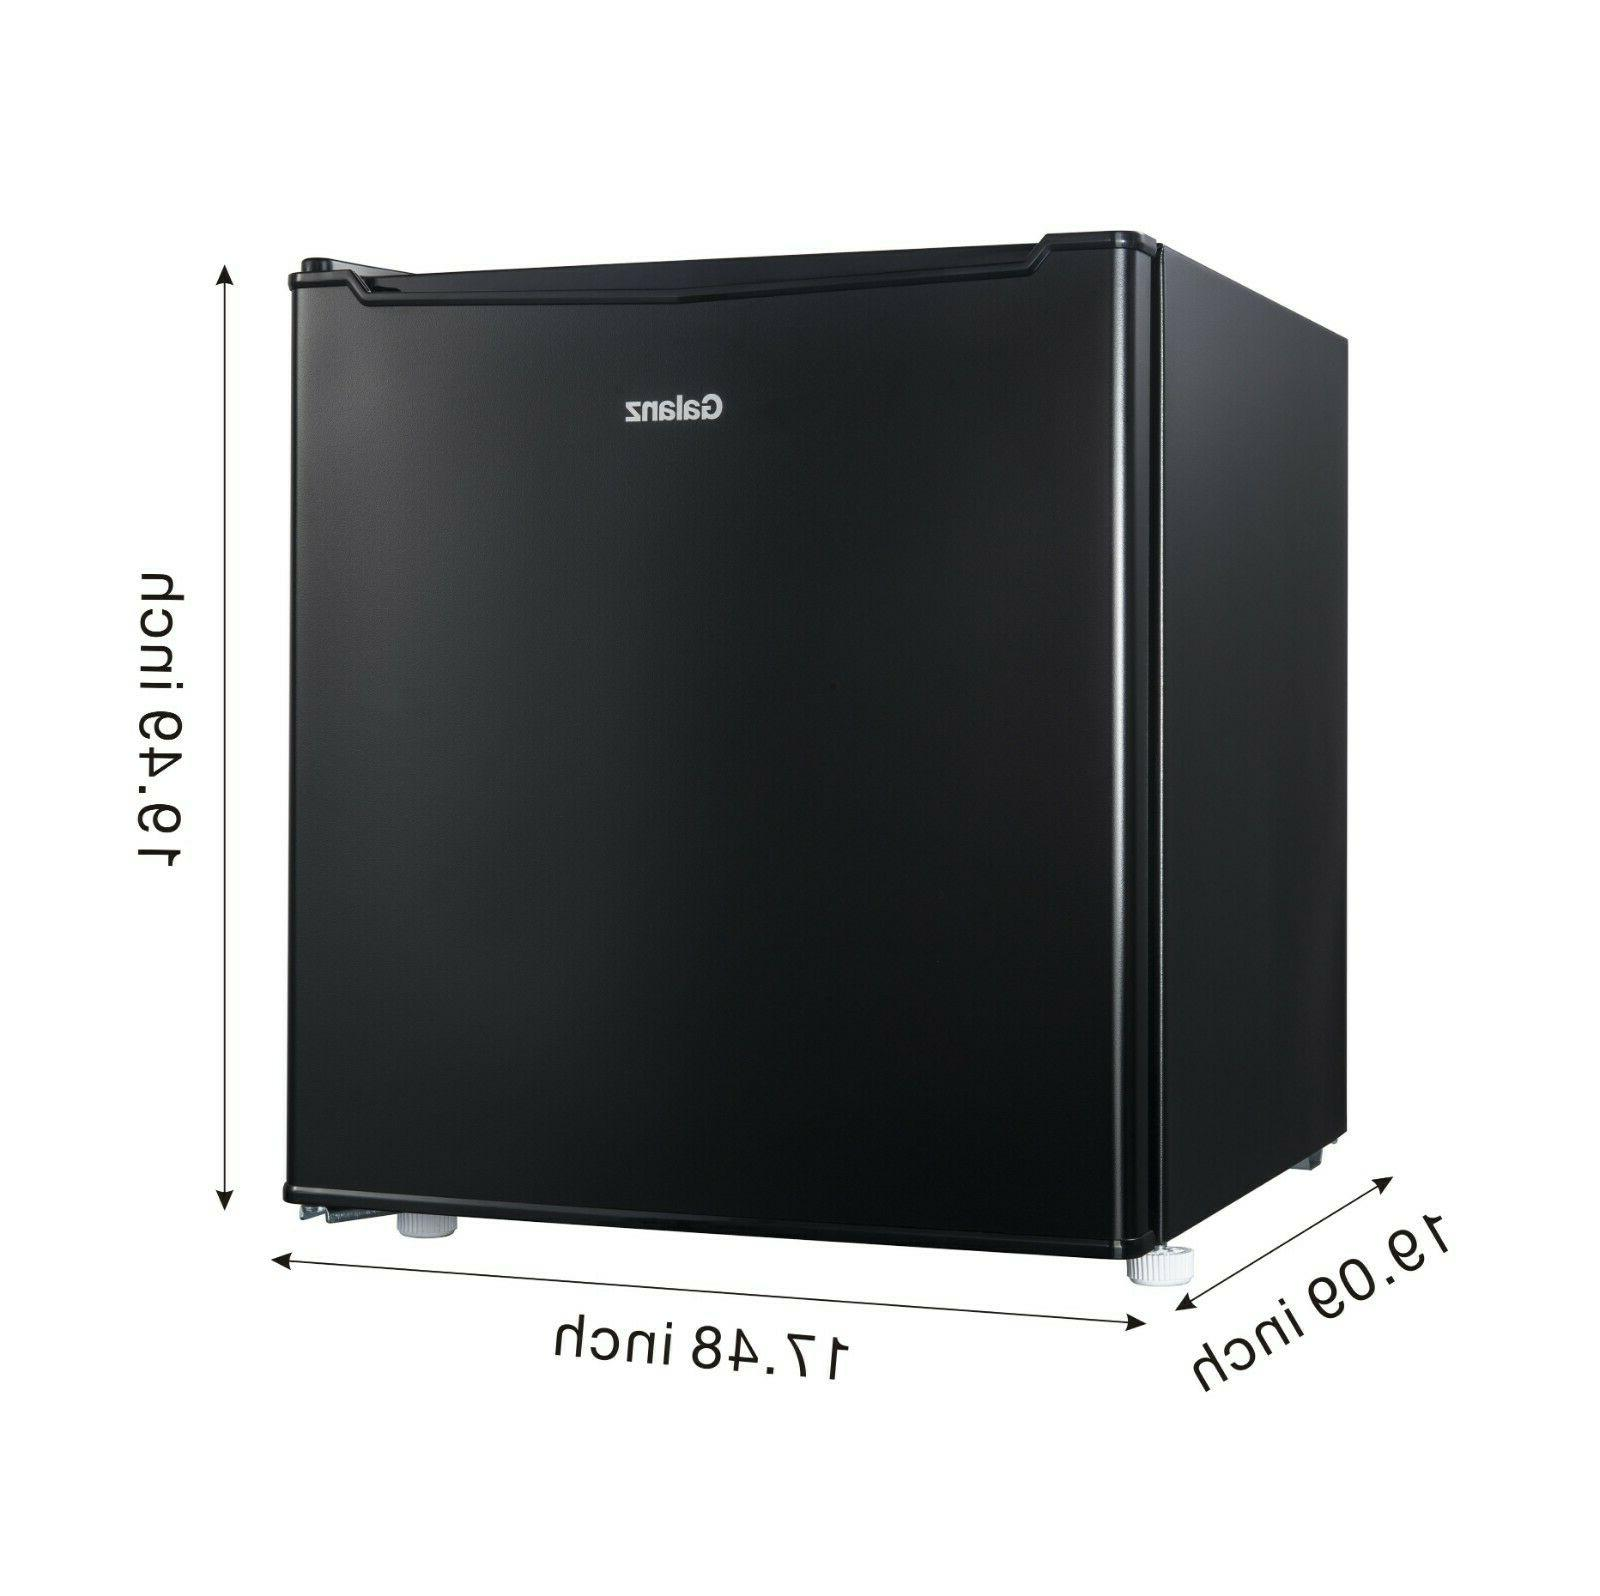 Galanz Single cu ft Mini Dorm Office Refrigerator New!